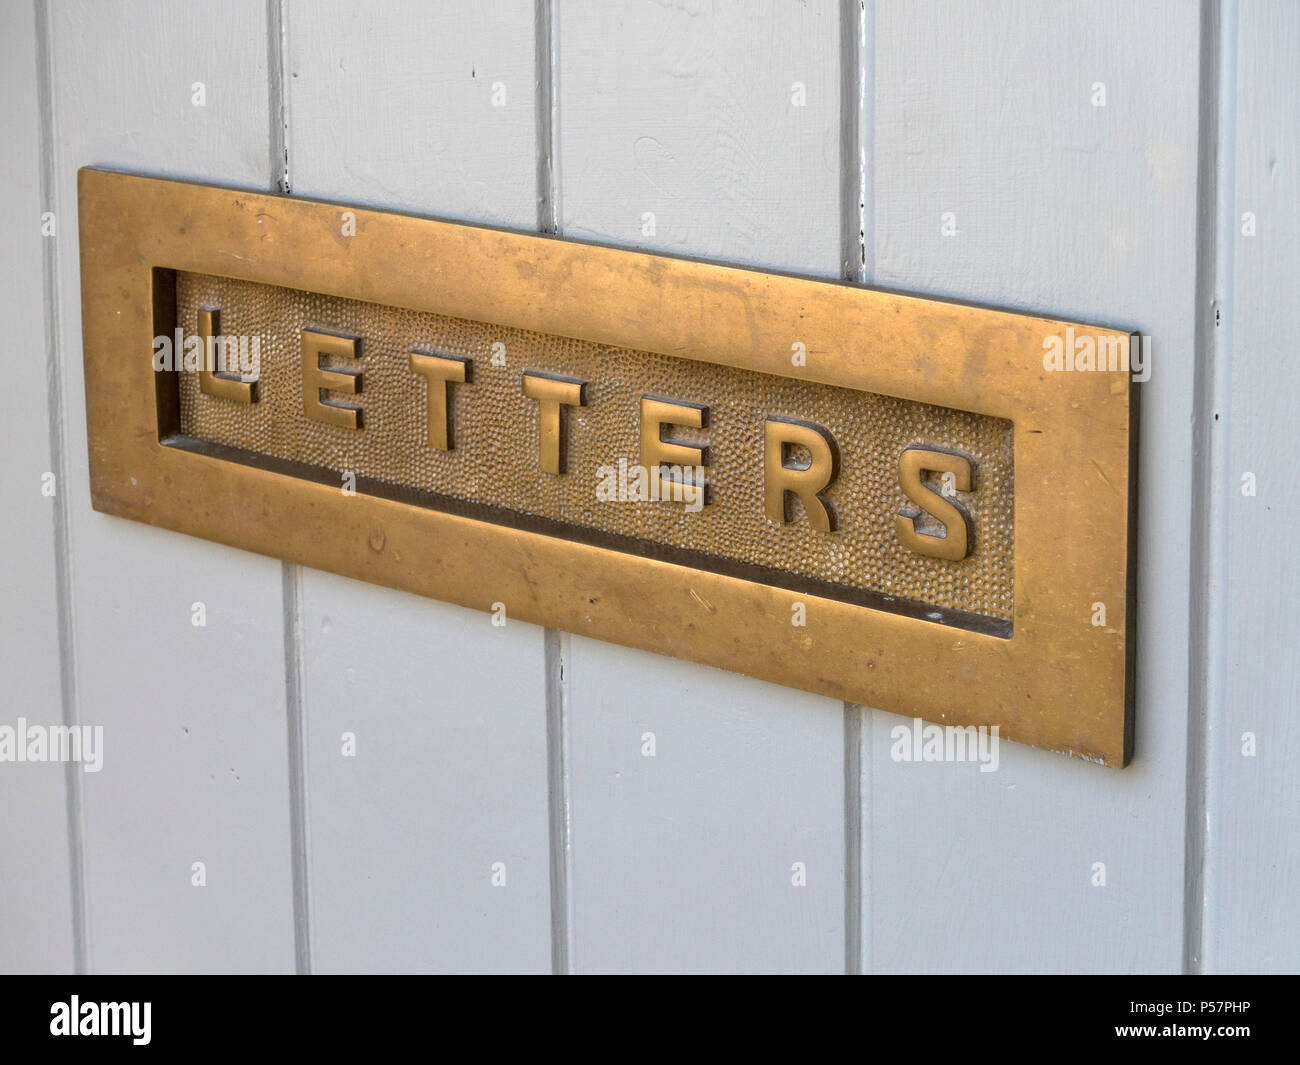 Old decorative cast brass metal house letterbox with the word 'letters' set in wooden door - Stock Image